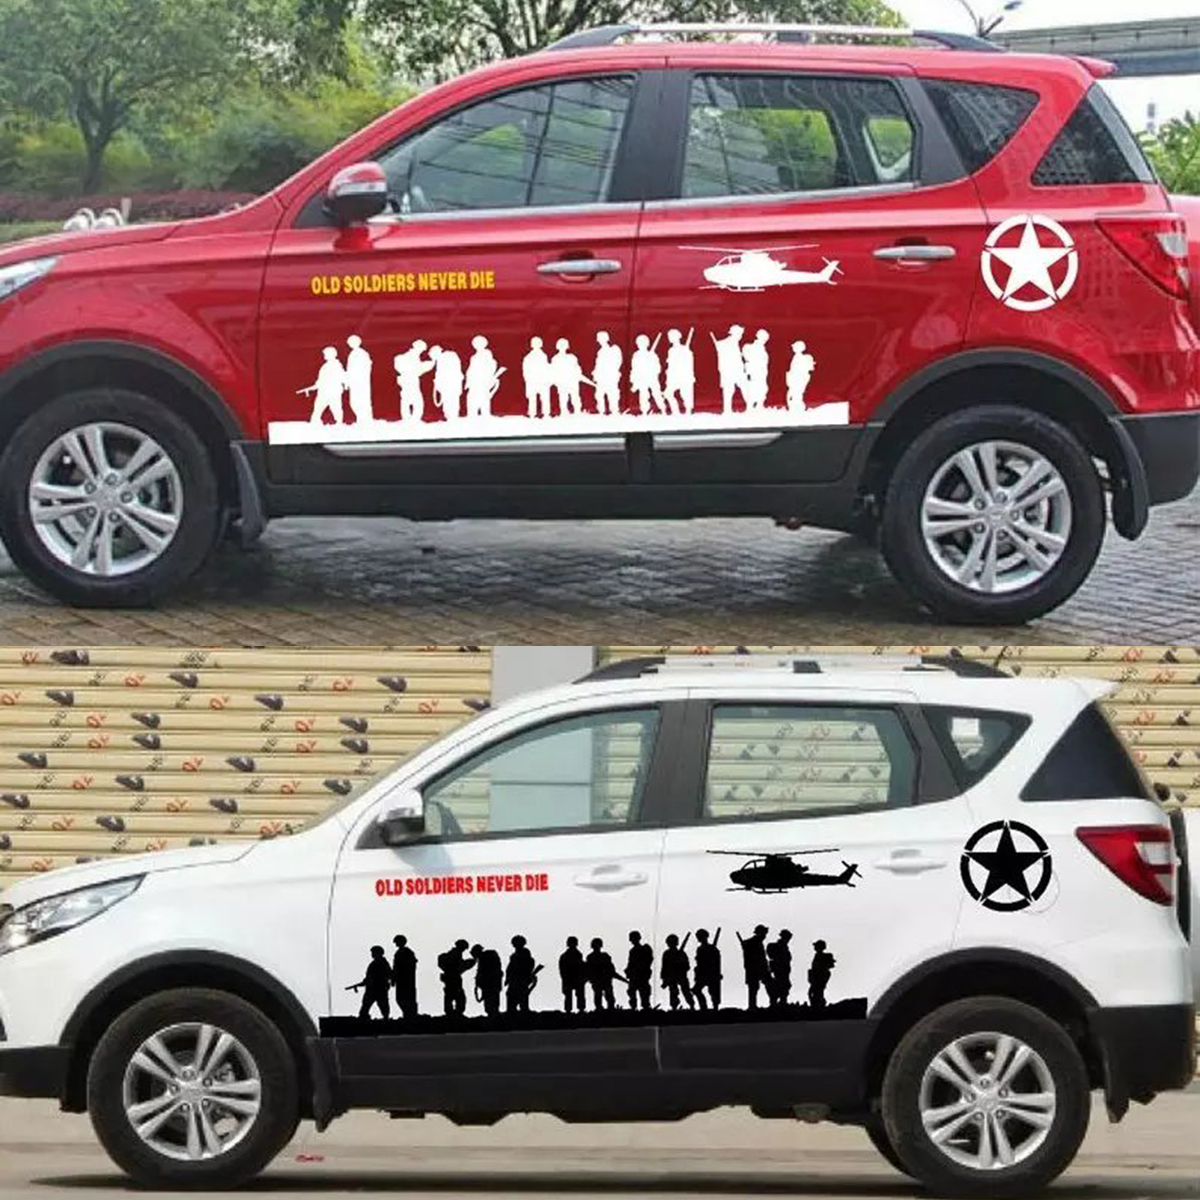 Car body sticker design singapore - Modified Vehicle Applique Full Car Body Garland Decorative Body Decals Car Stickers Army Soldier Band Of